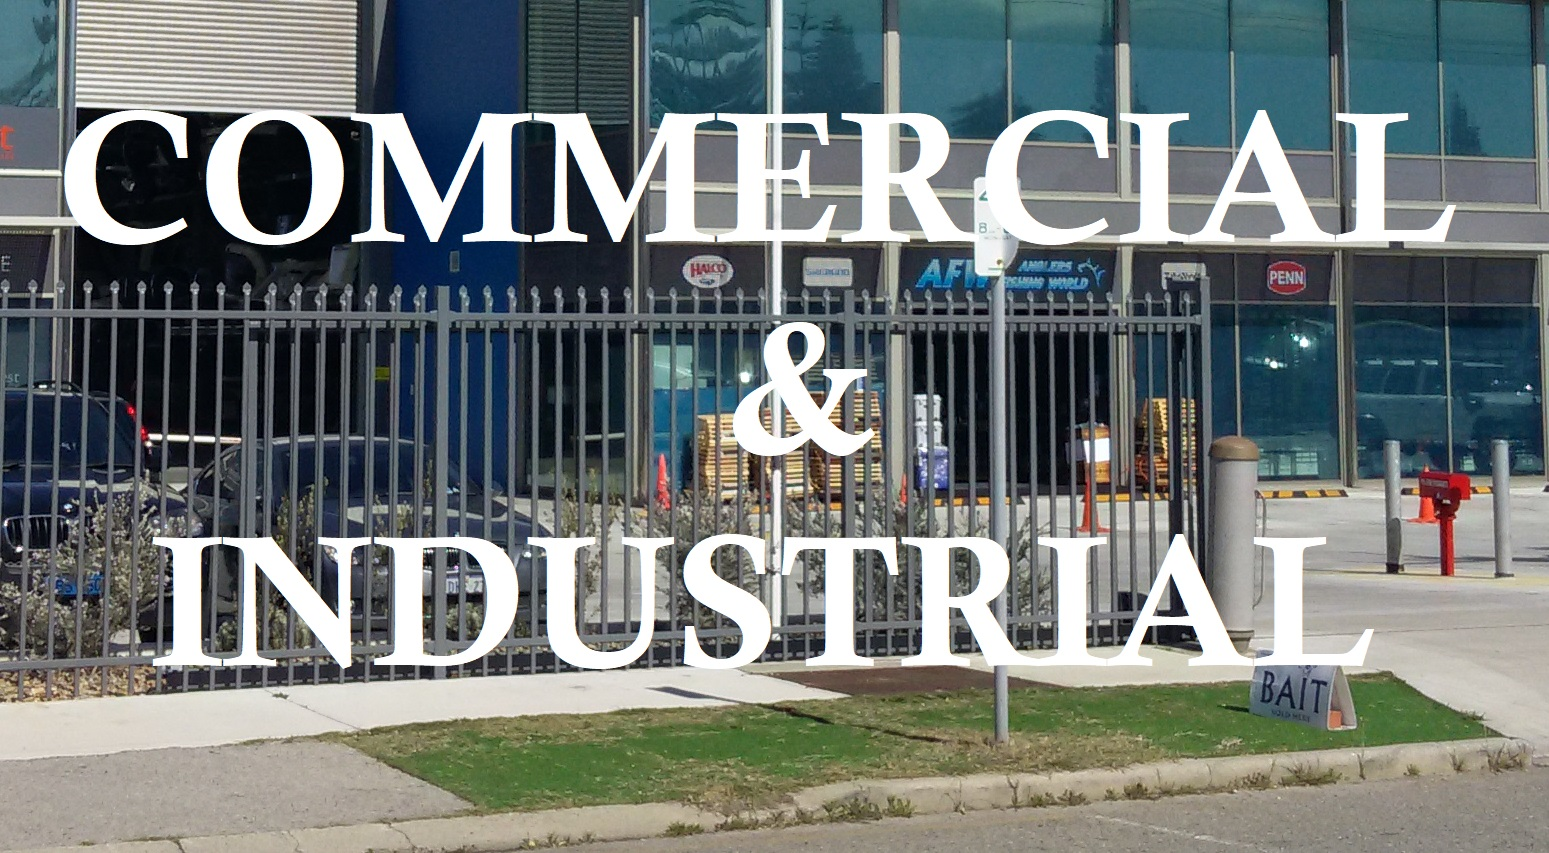 http://verdanteng.com.au/category/commercial-industrial/